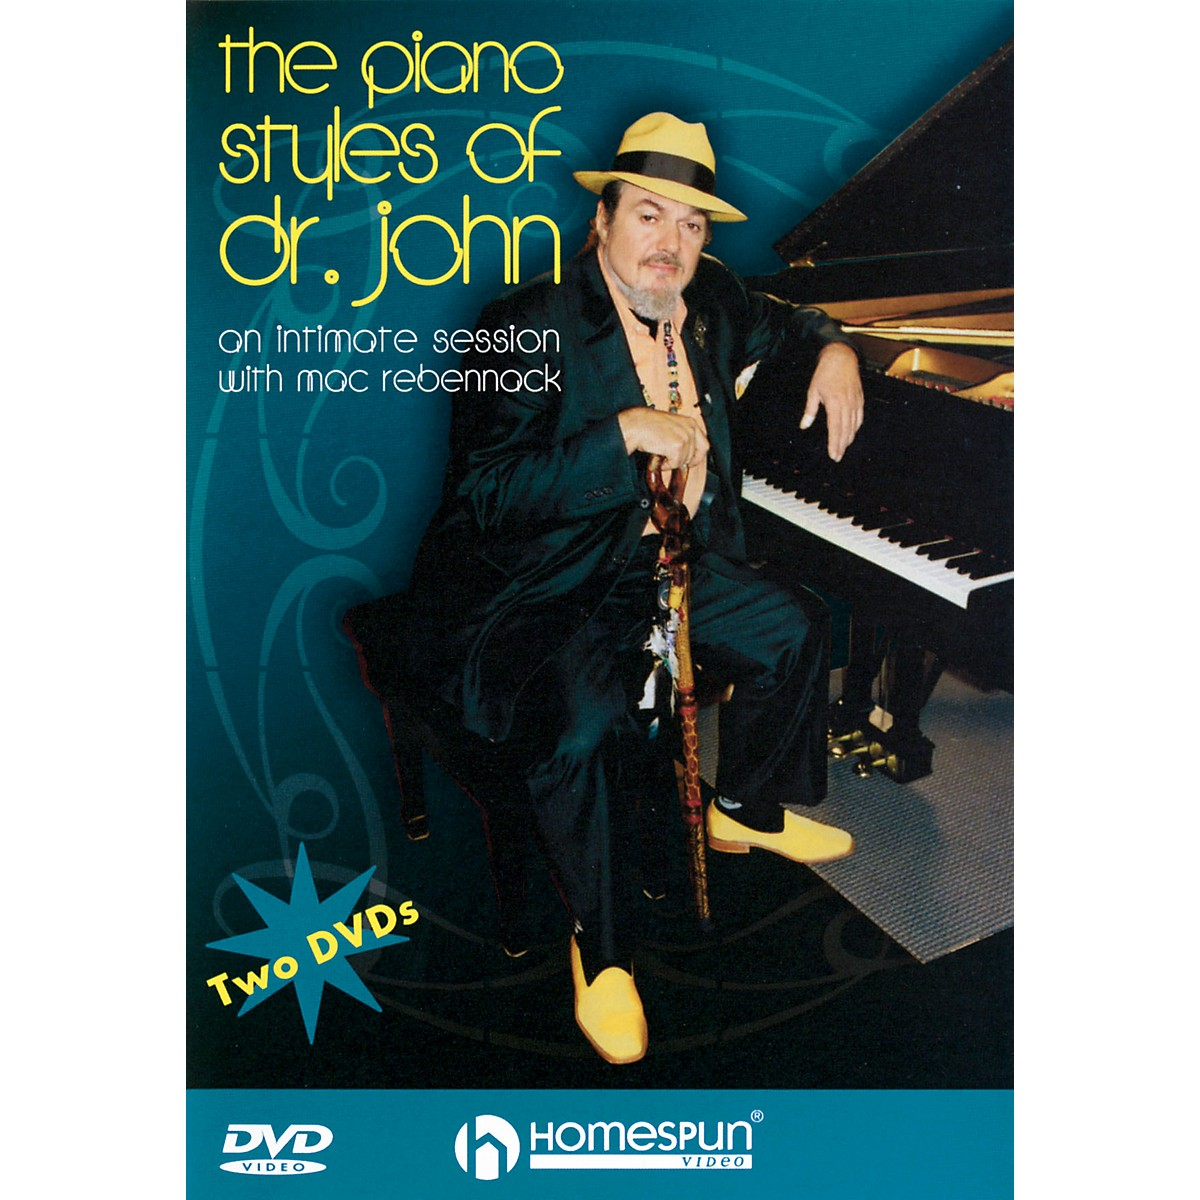 Homespun The Piano Styles of Dr. John - 2-DVD Set Homespun Tapes Series DVD Written by Dr. John Rebennack